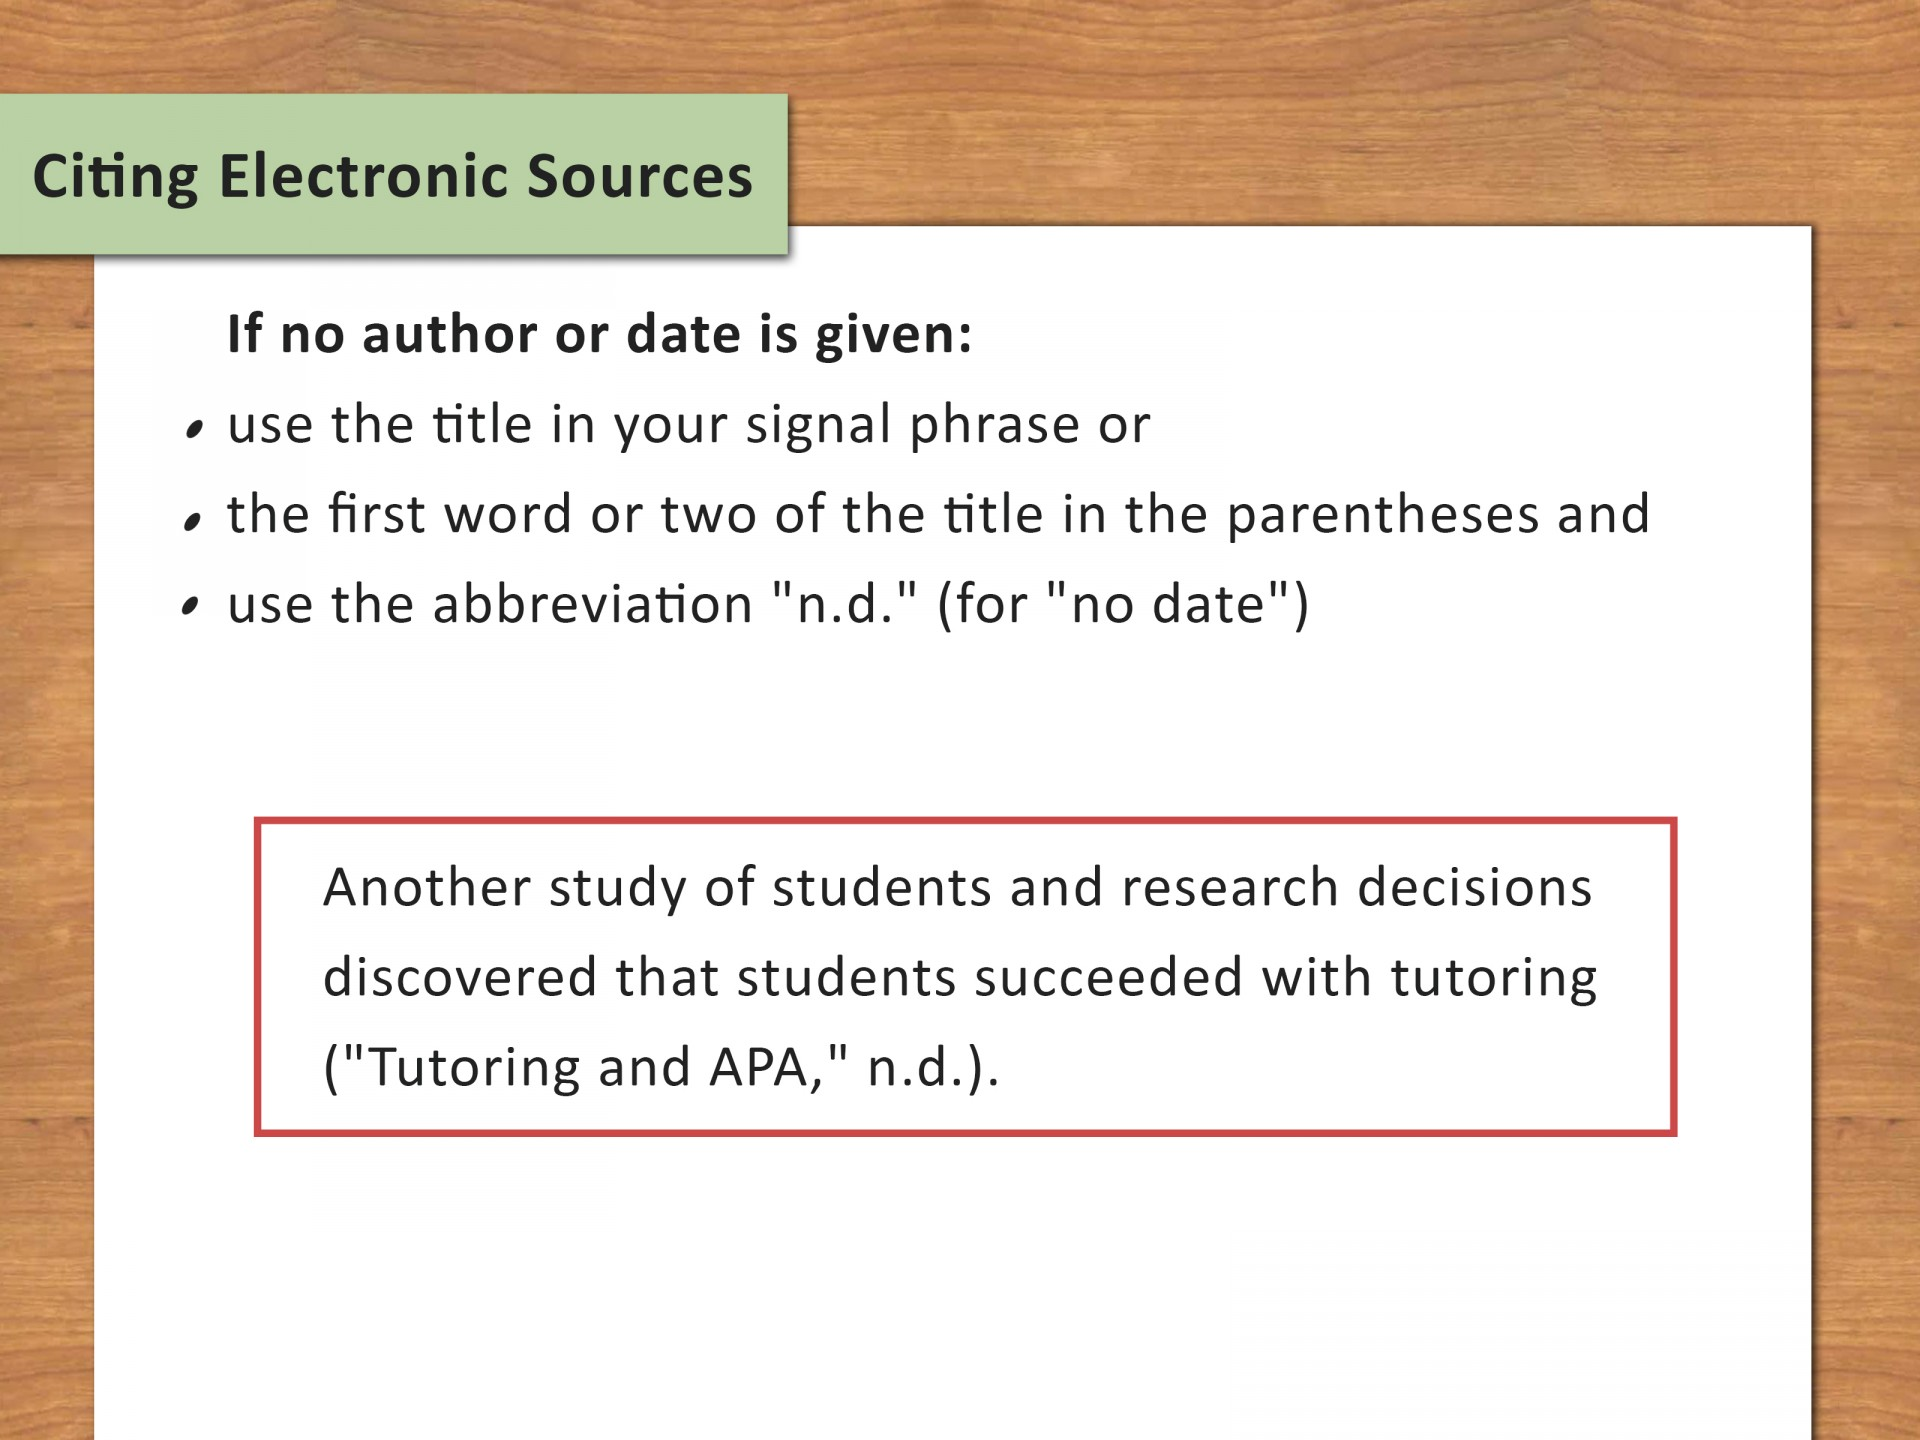 020 Research Paper Citing Sources In Paragraph Apa Use Internal Citations Step Impressive How To Cite A Style 1920